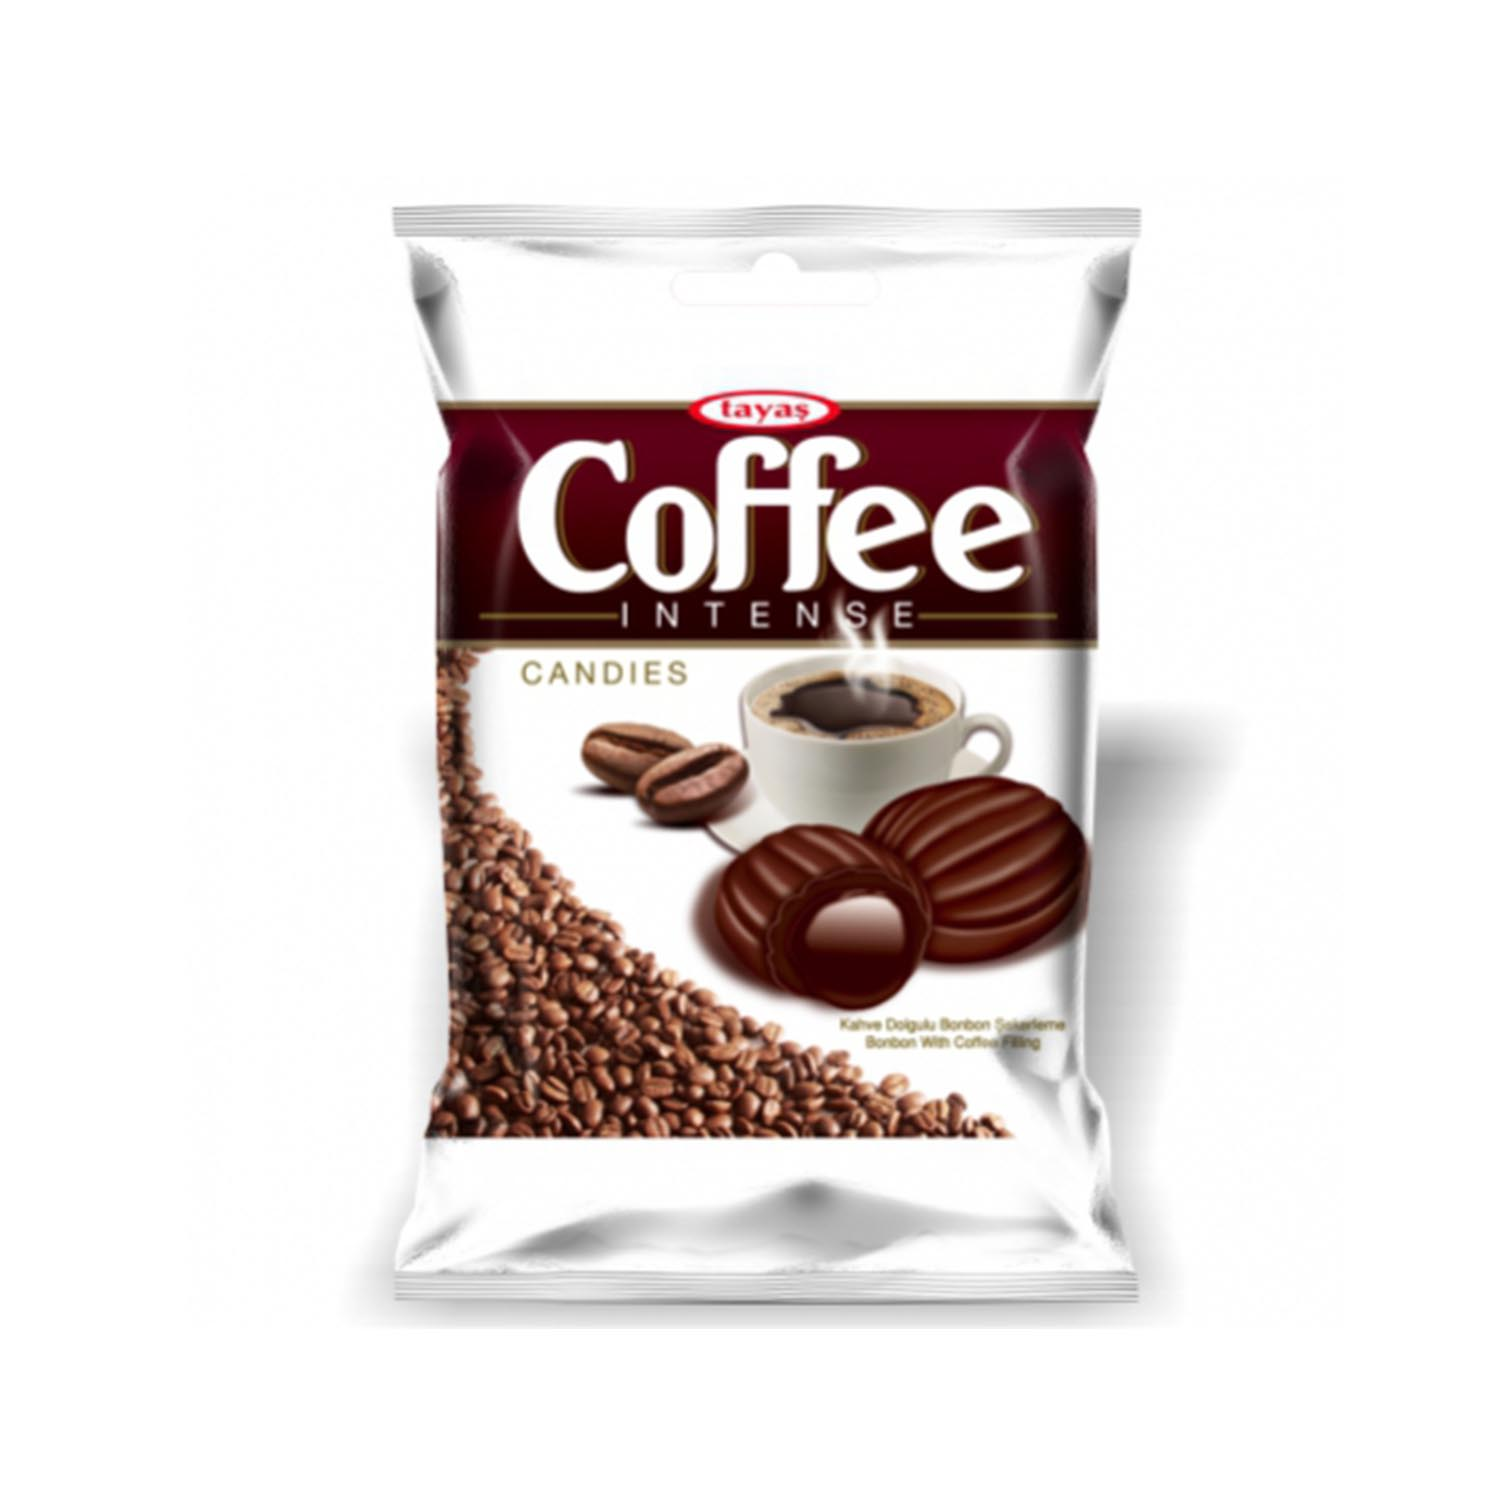 Coffee Intense Candy 90g